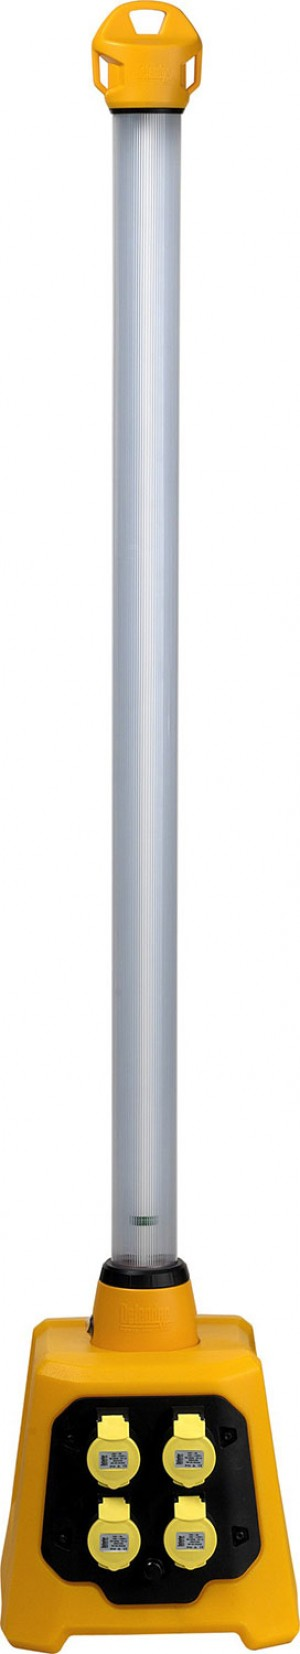 Defender 4ft UPLIGHT V3 Portable Fluorescent Work Light 110v (Stick & Base Included)